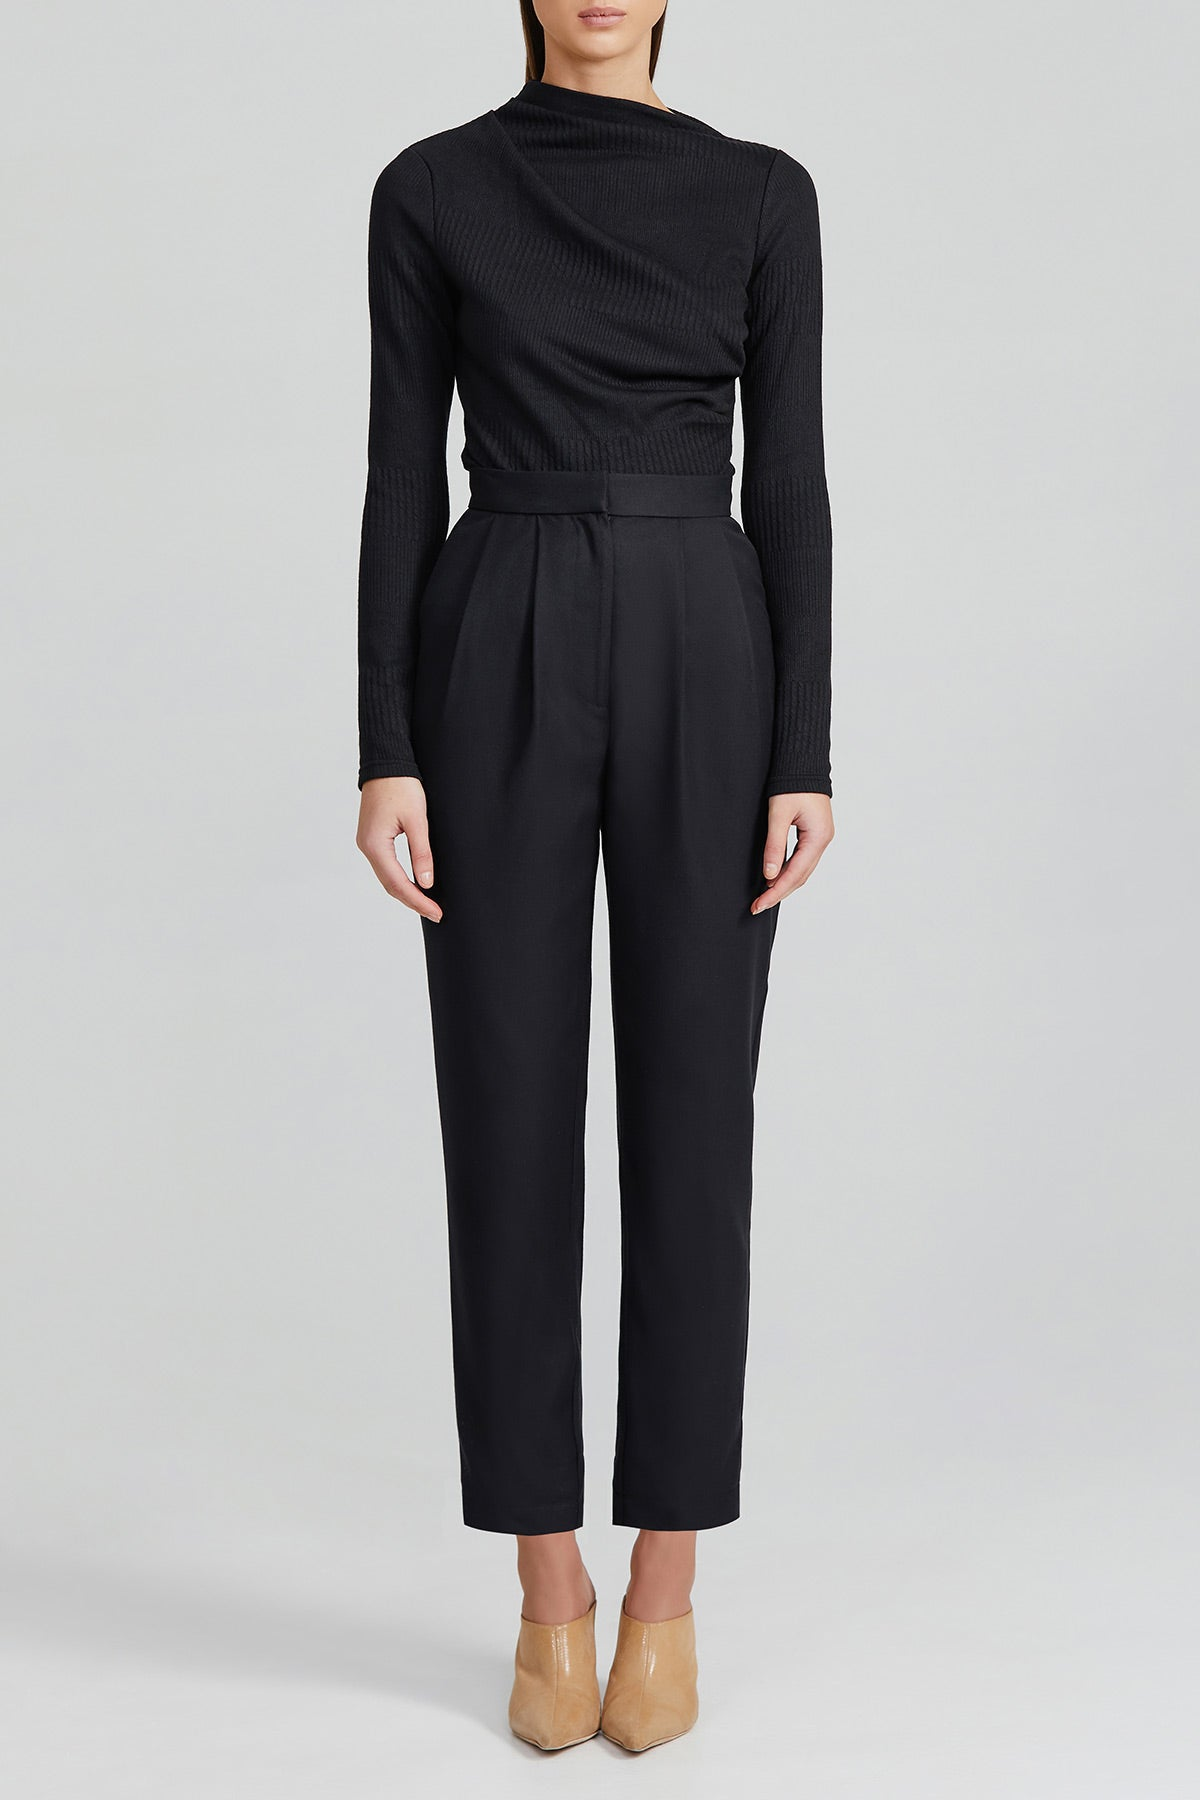 Acler Ladies Straight Leg Black Pant with Zip and Gold Button Fastening and Front Pleats